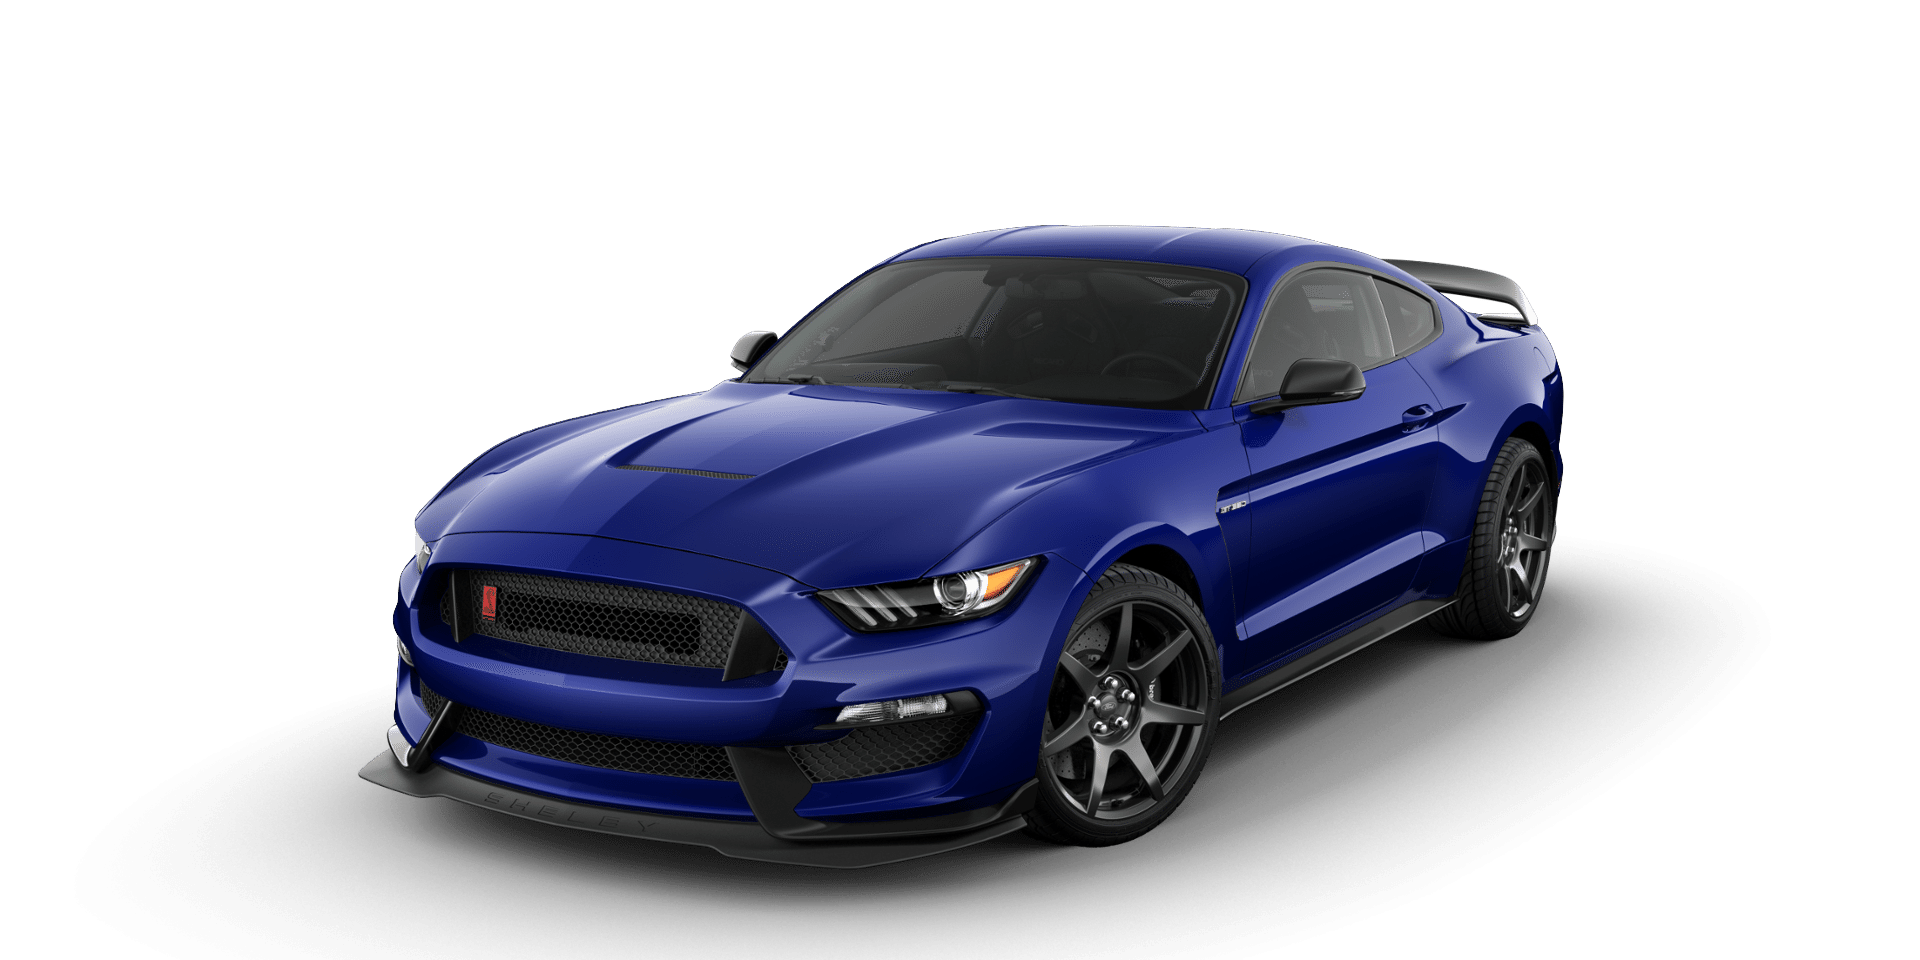 2016 Ford Mustang Build Price Places To Visit Mustang Ford